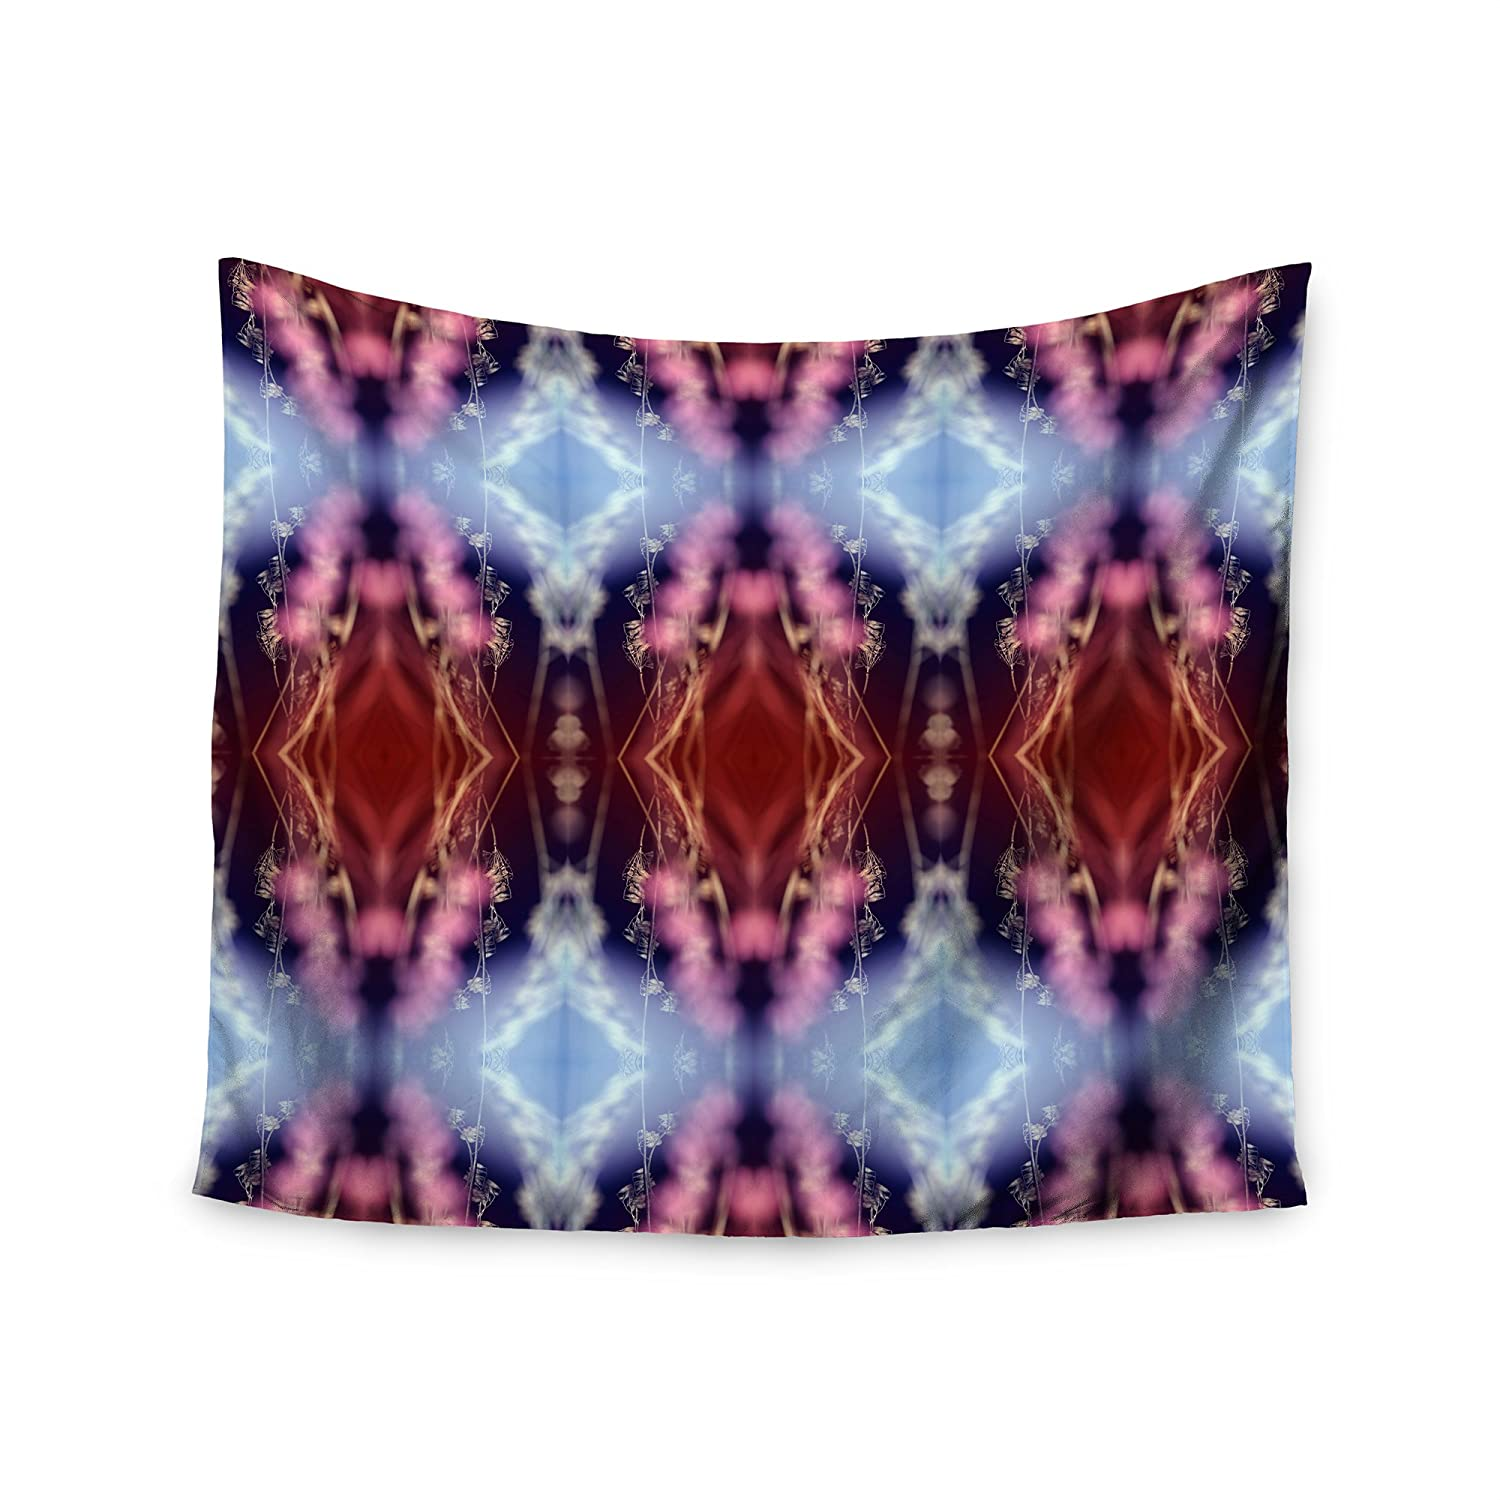 51 x 60 Kess InHouse Pia Schneider Abstract Floral Nature Blue Wall Tapestry